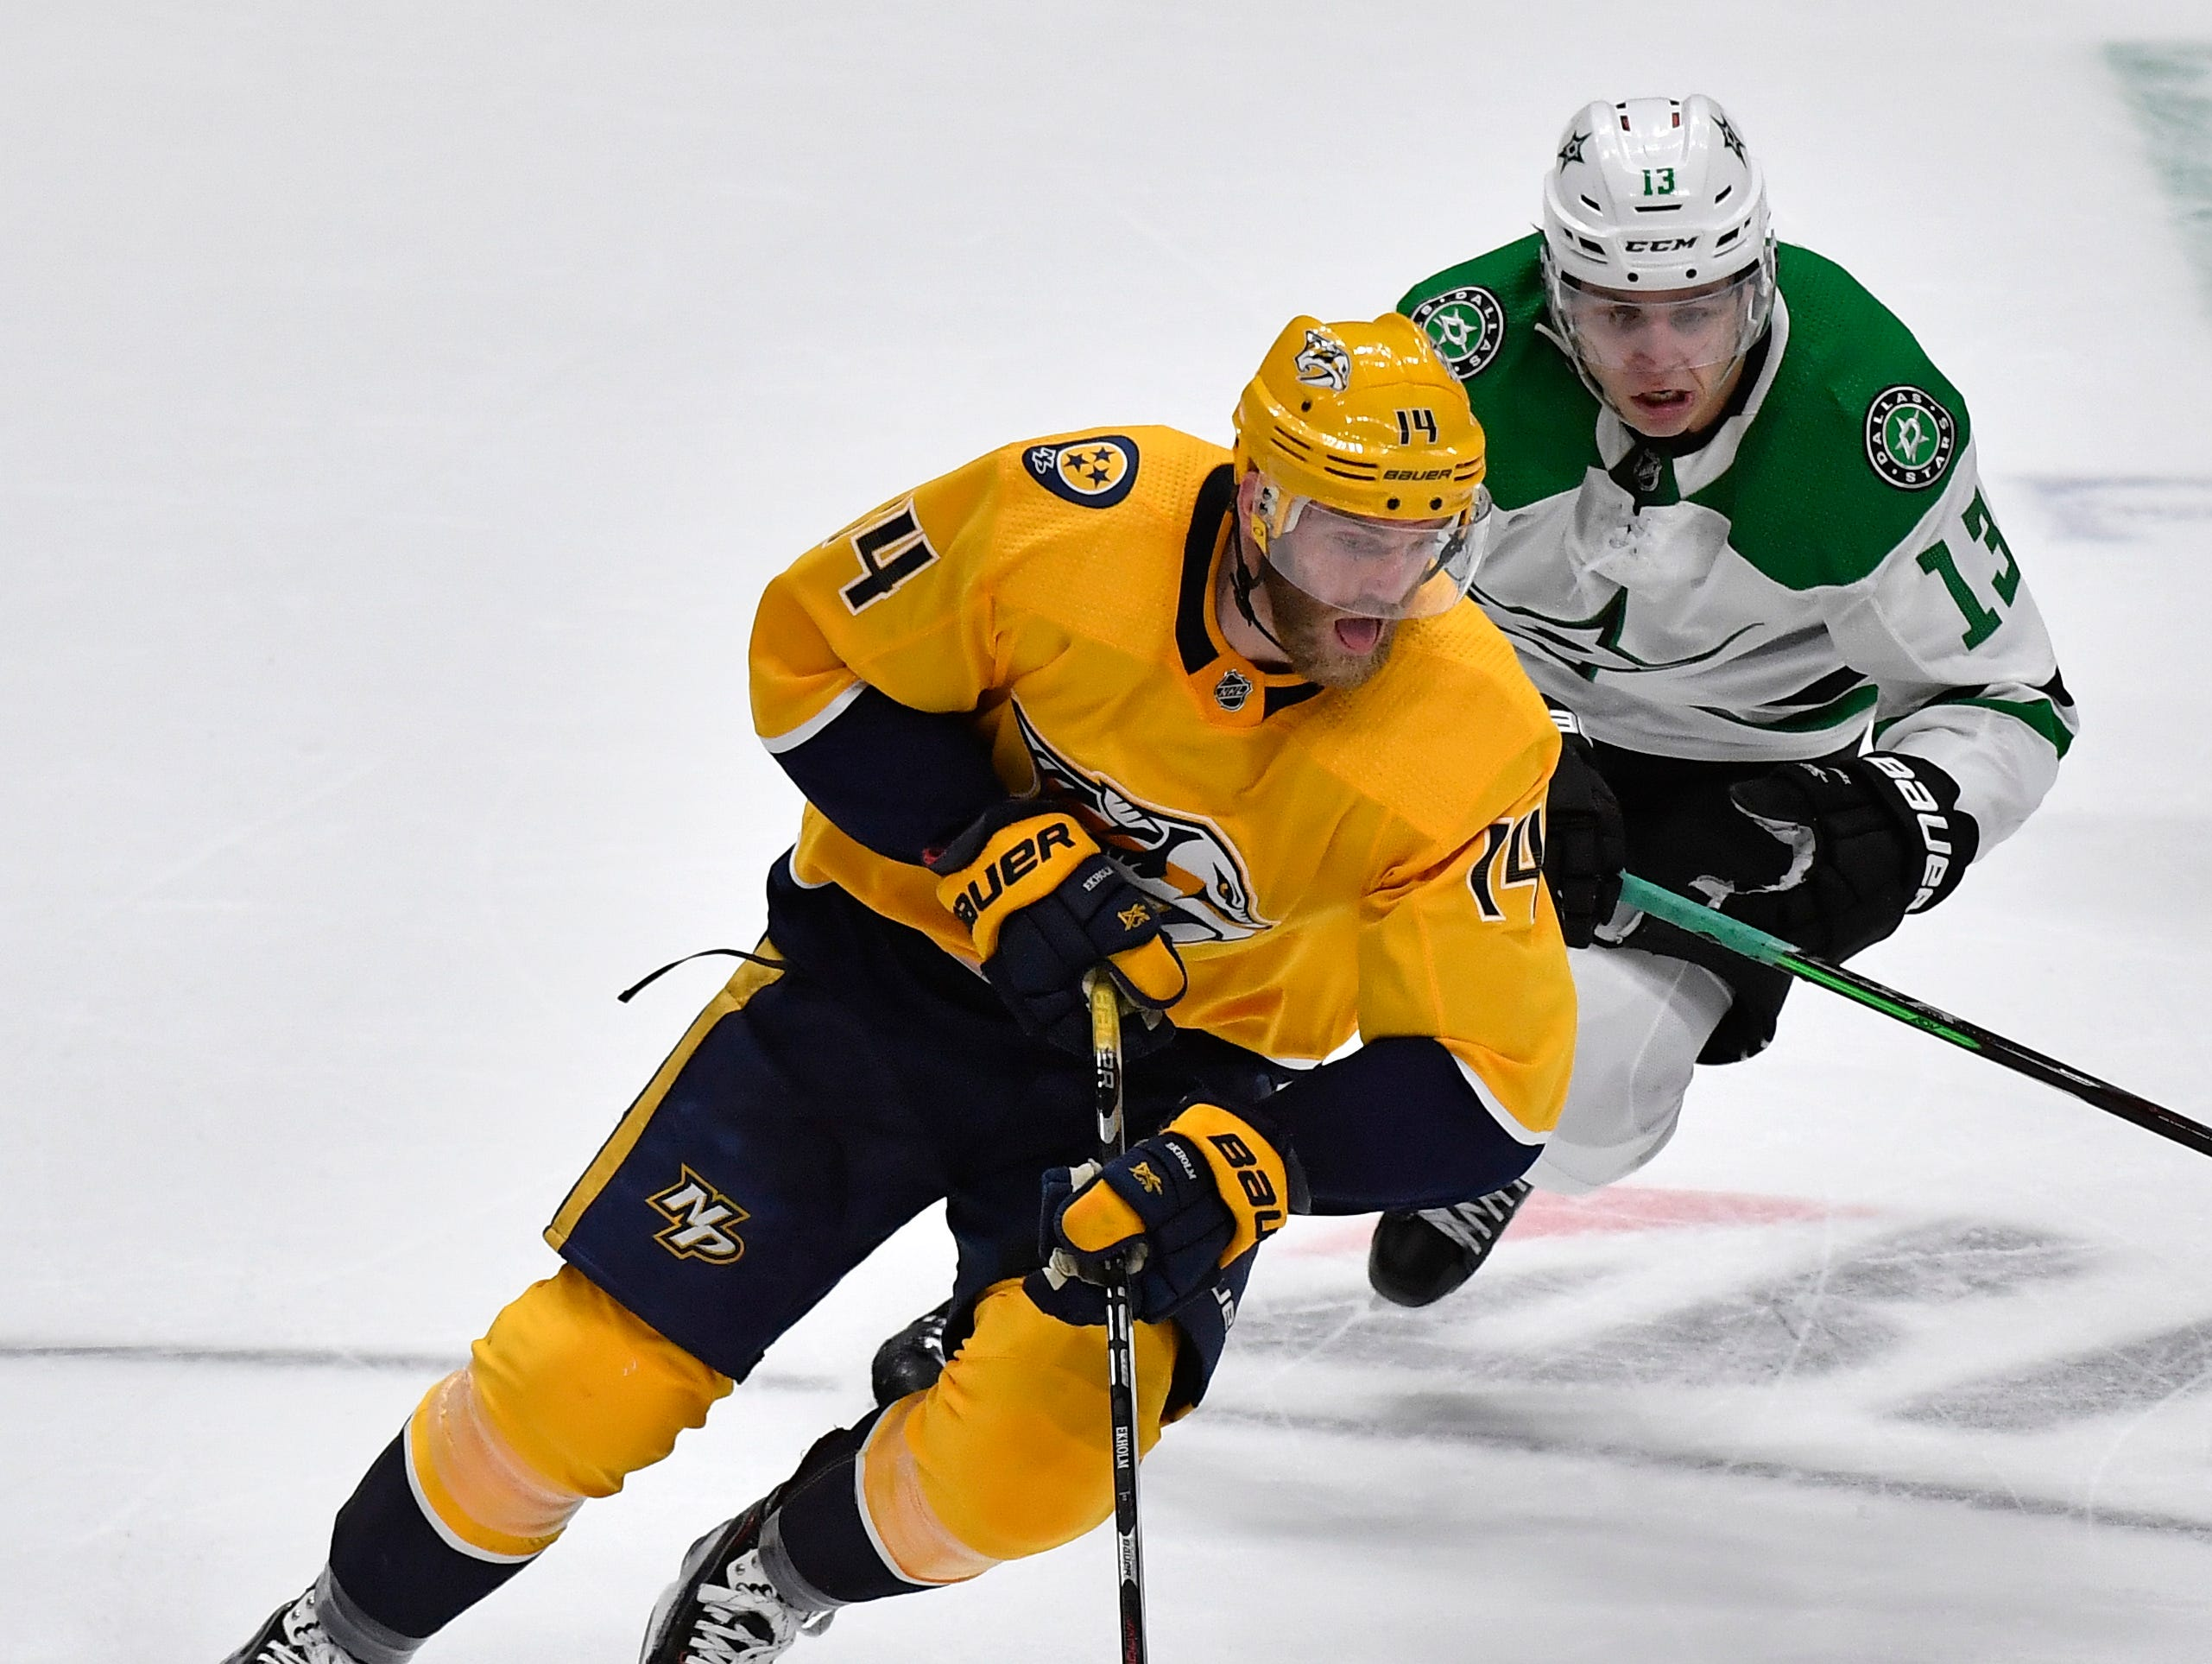 Nashville Predators defenseman Mattias Ekholm (14) moves the puck defended by Dallas Stars center Mattias Janmark (13) during the third period of the divisional semifinal game at Bridgestone Arena in Nashville, Tenn., Wednesday, April 10, 2019.